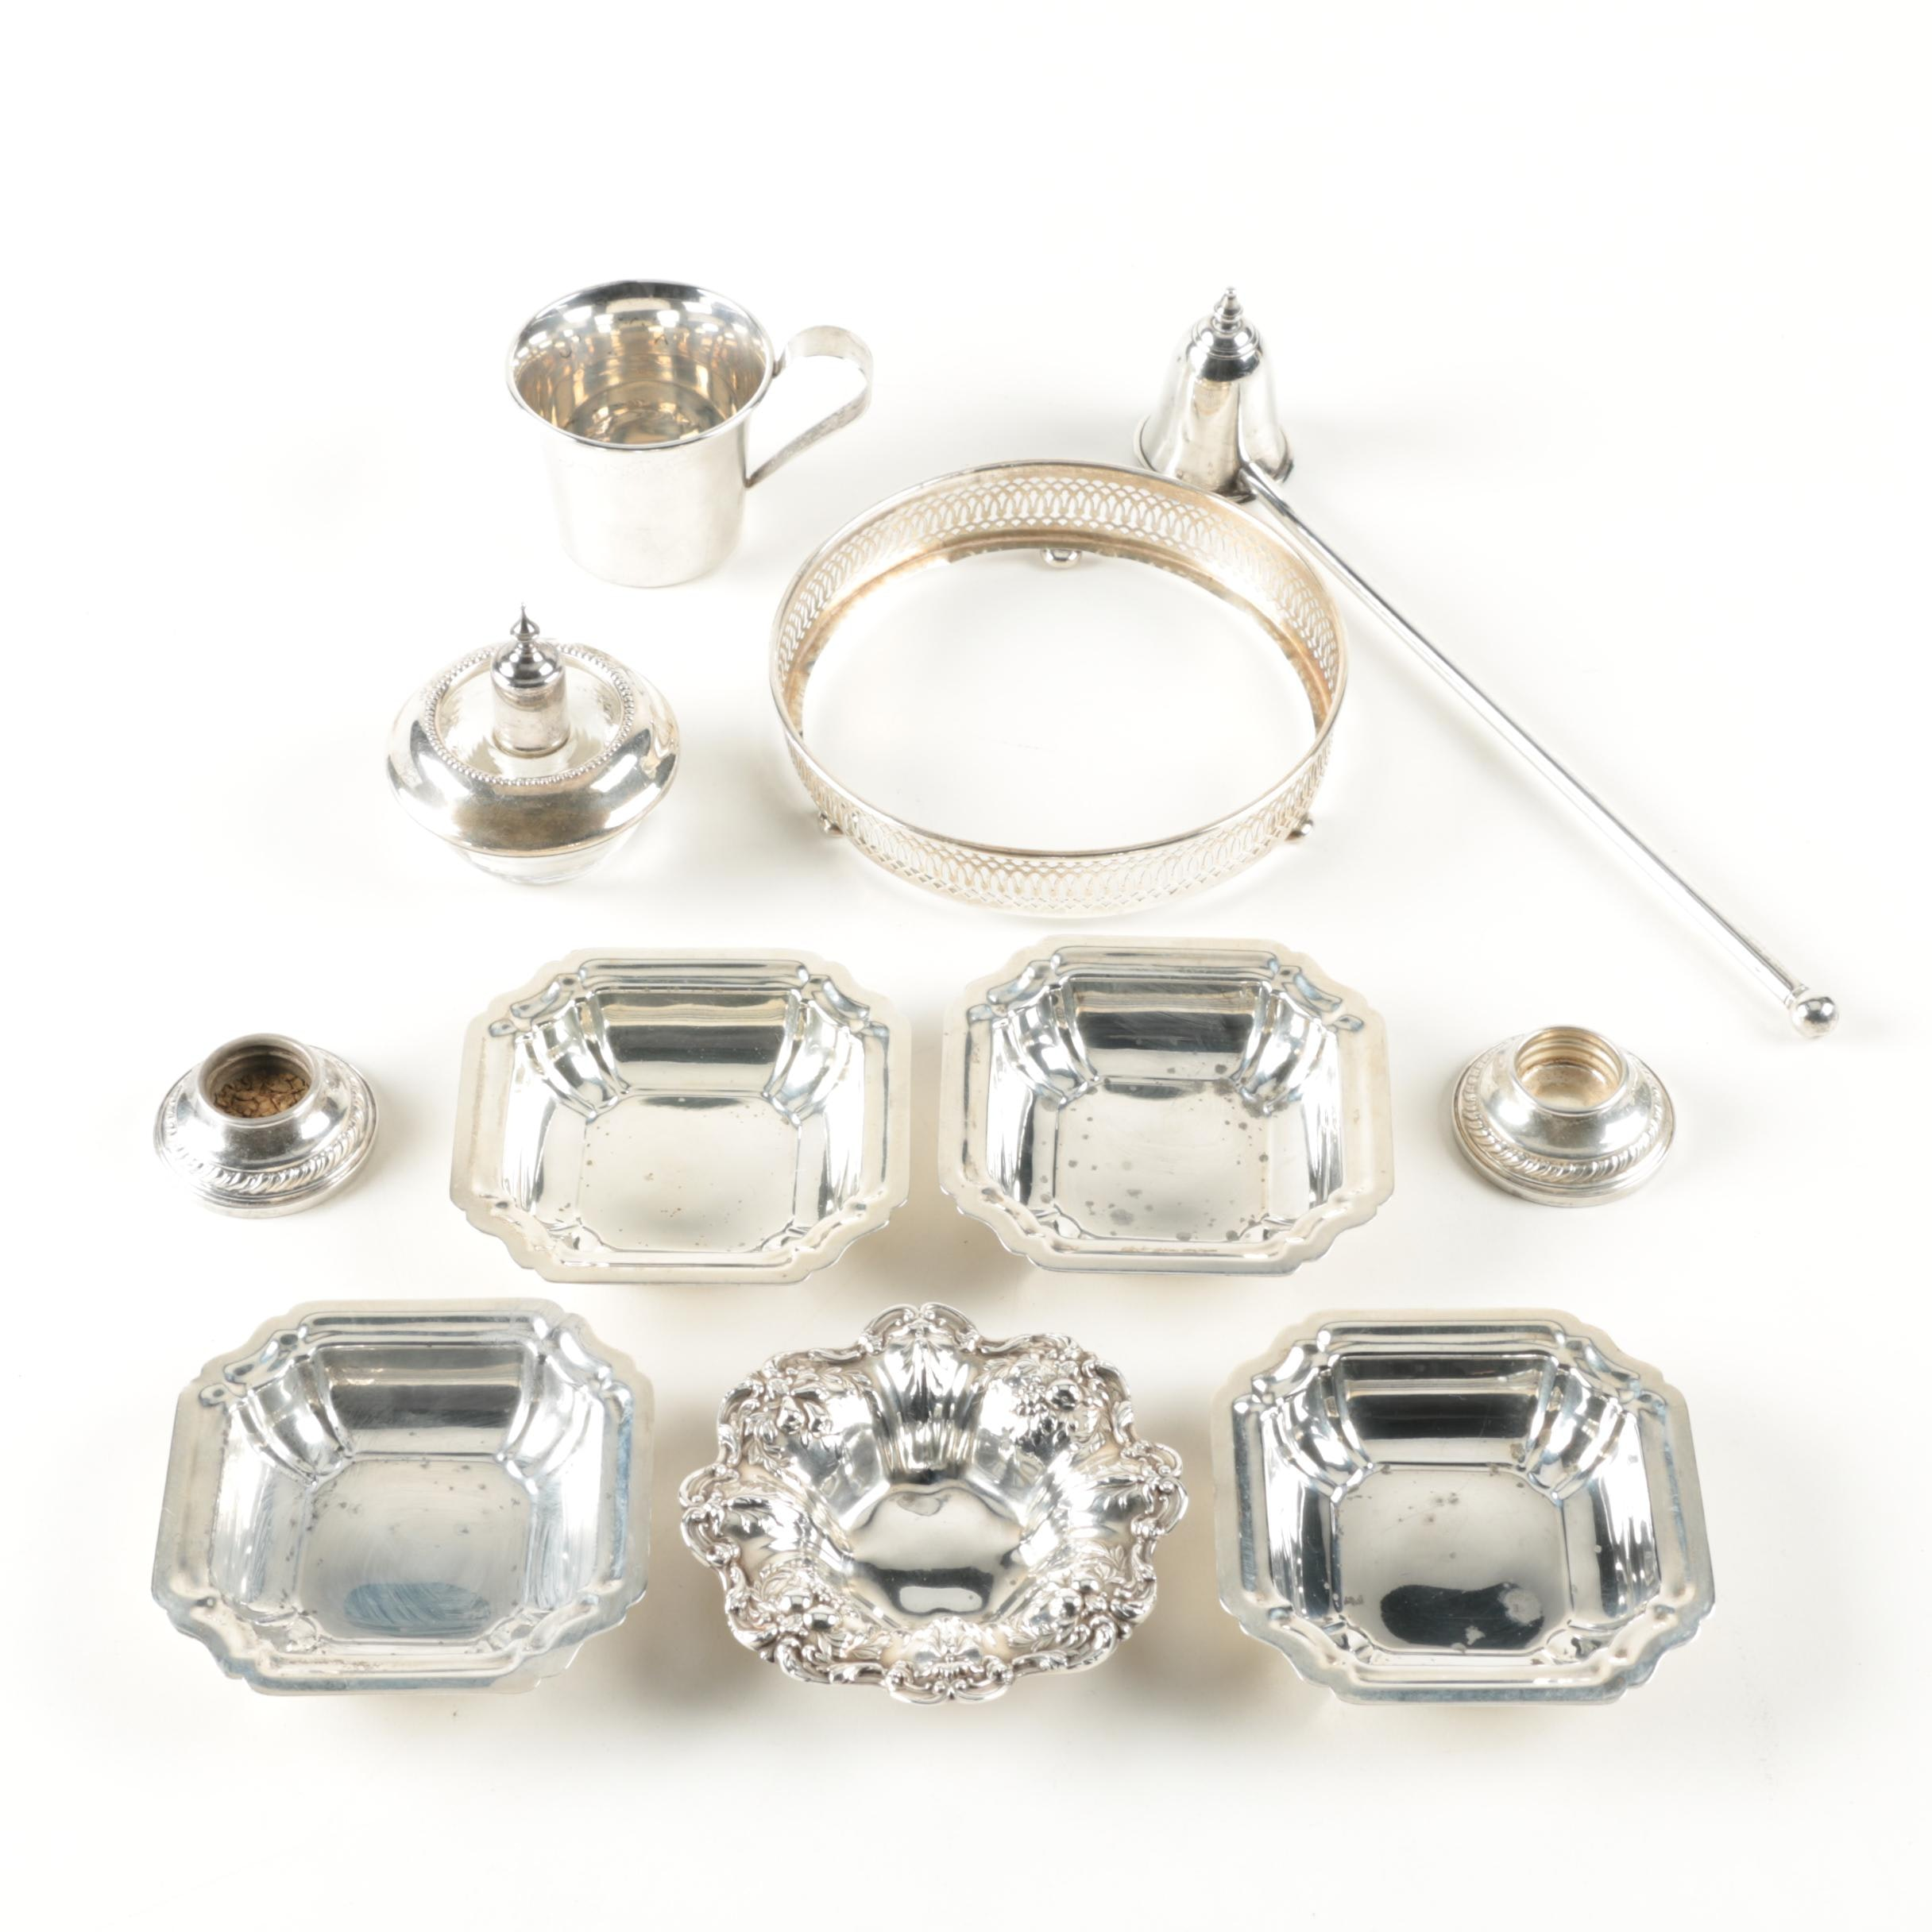 Assortment of Sterling Silver Tableware Featuring Reed & Barton